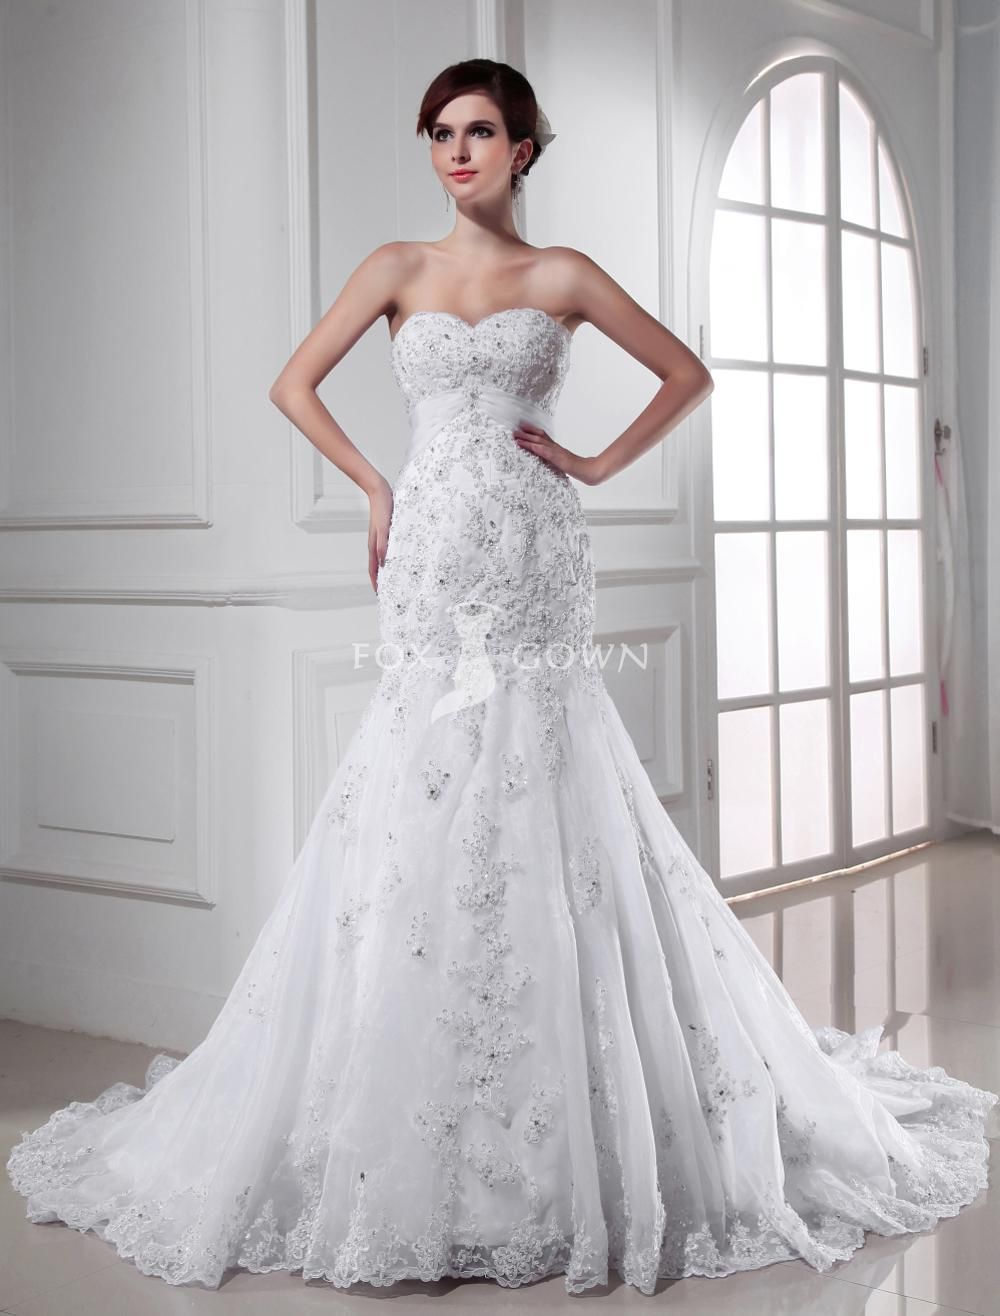 fit and flare wedding dress - Google Search | Wedding stuff ...